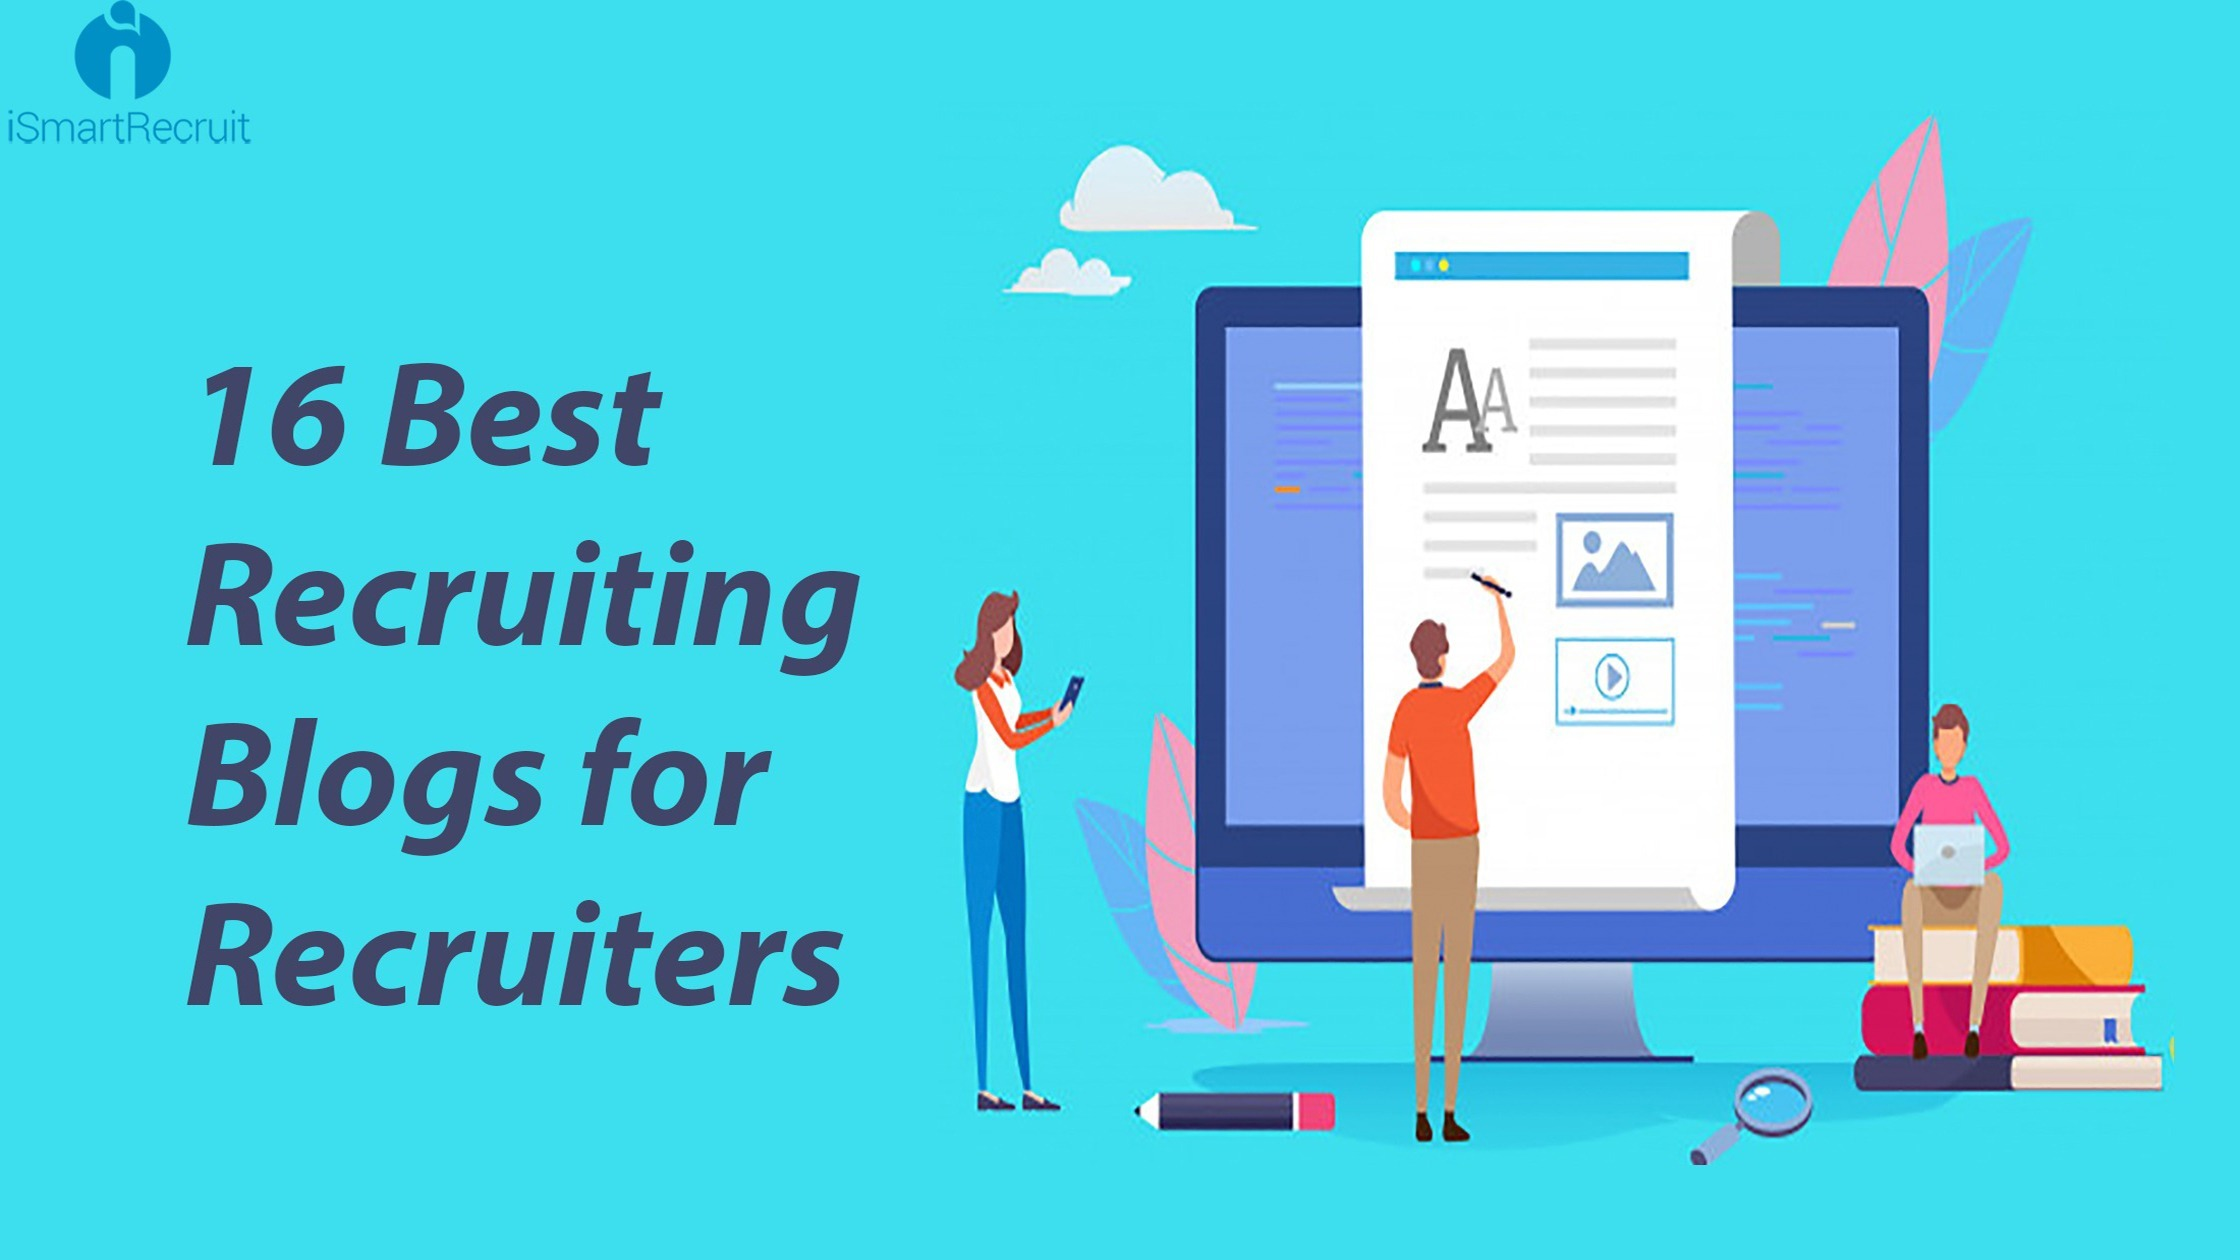 16 Best Recruiting Blogs for Recruiters